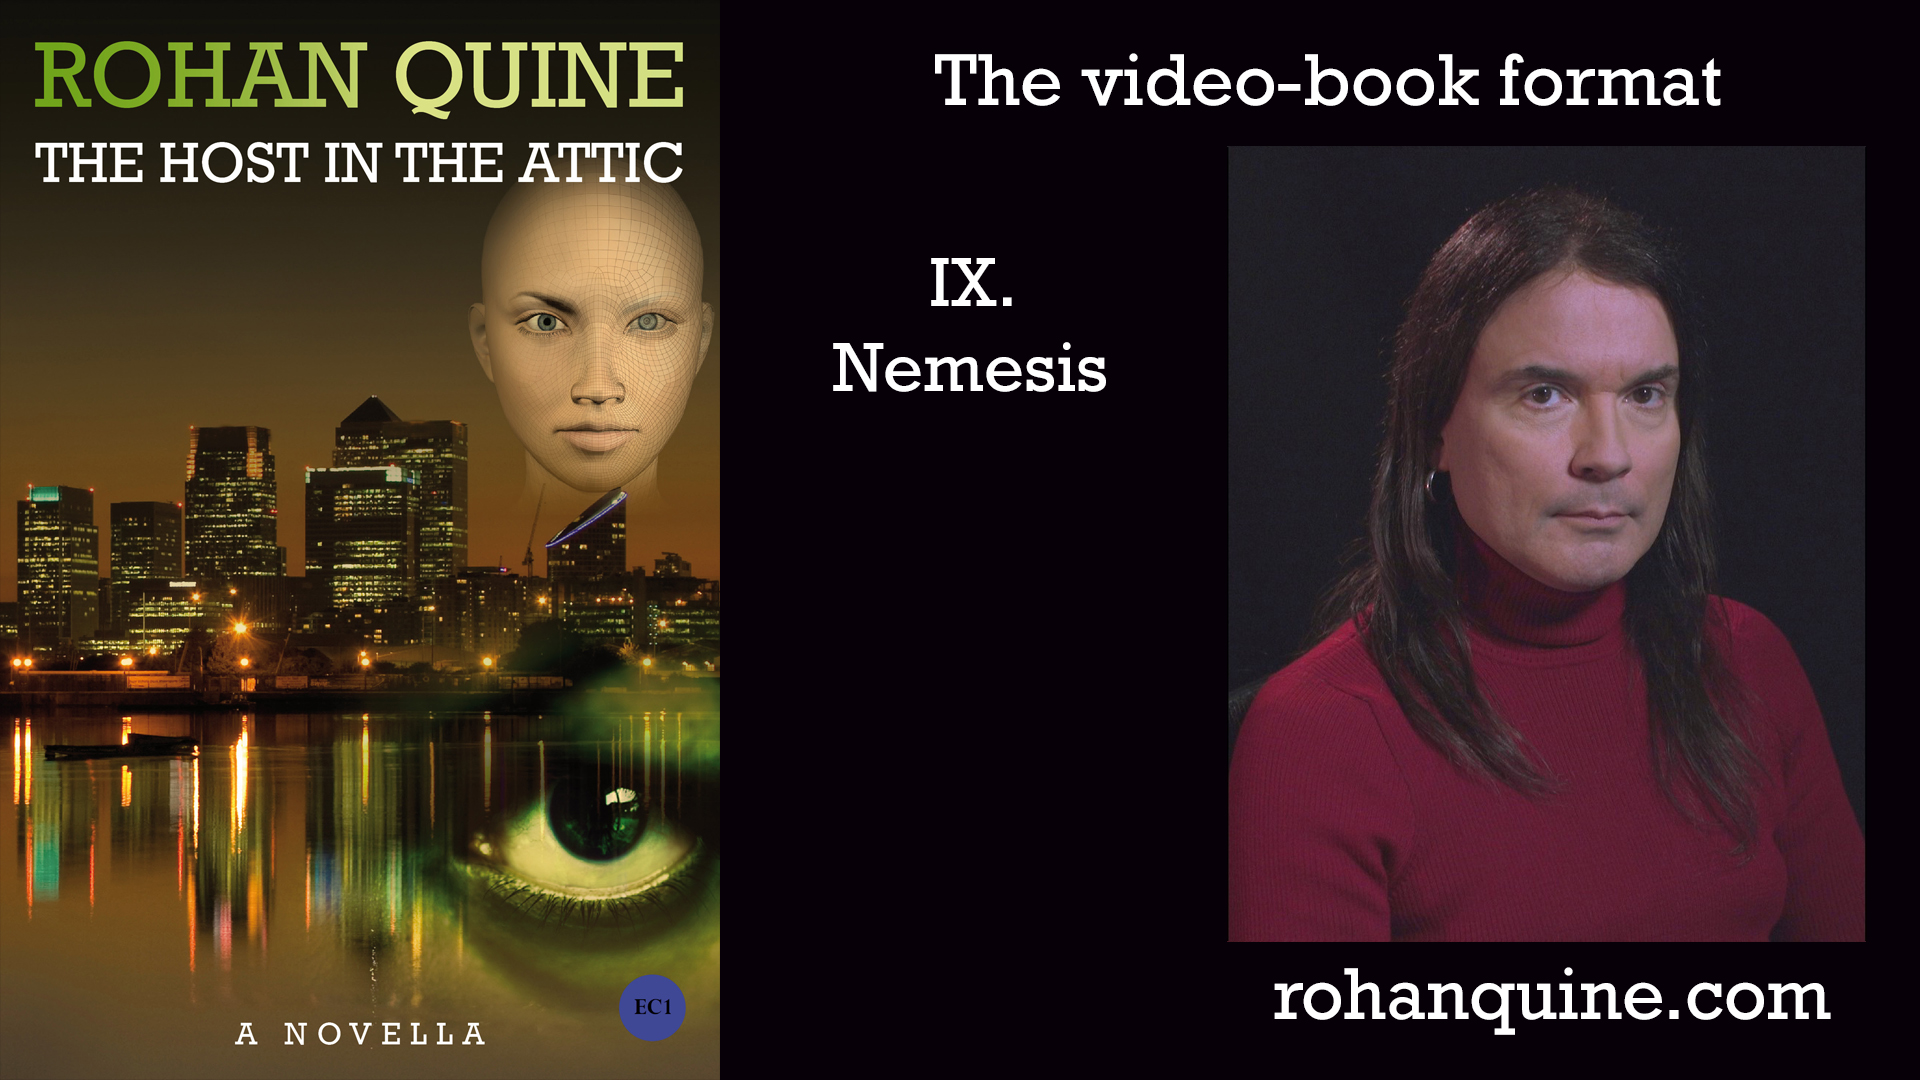 THE HOST IN THE ATTIC by Rohan Quine - video-book format - chapter IX